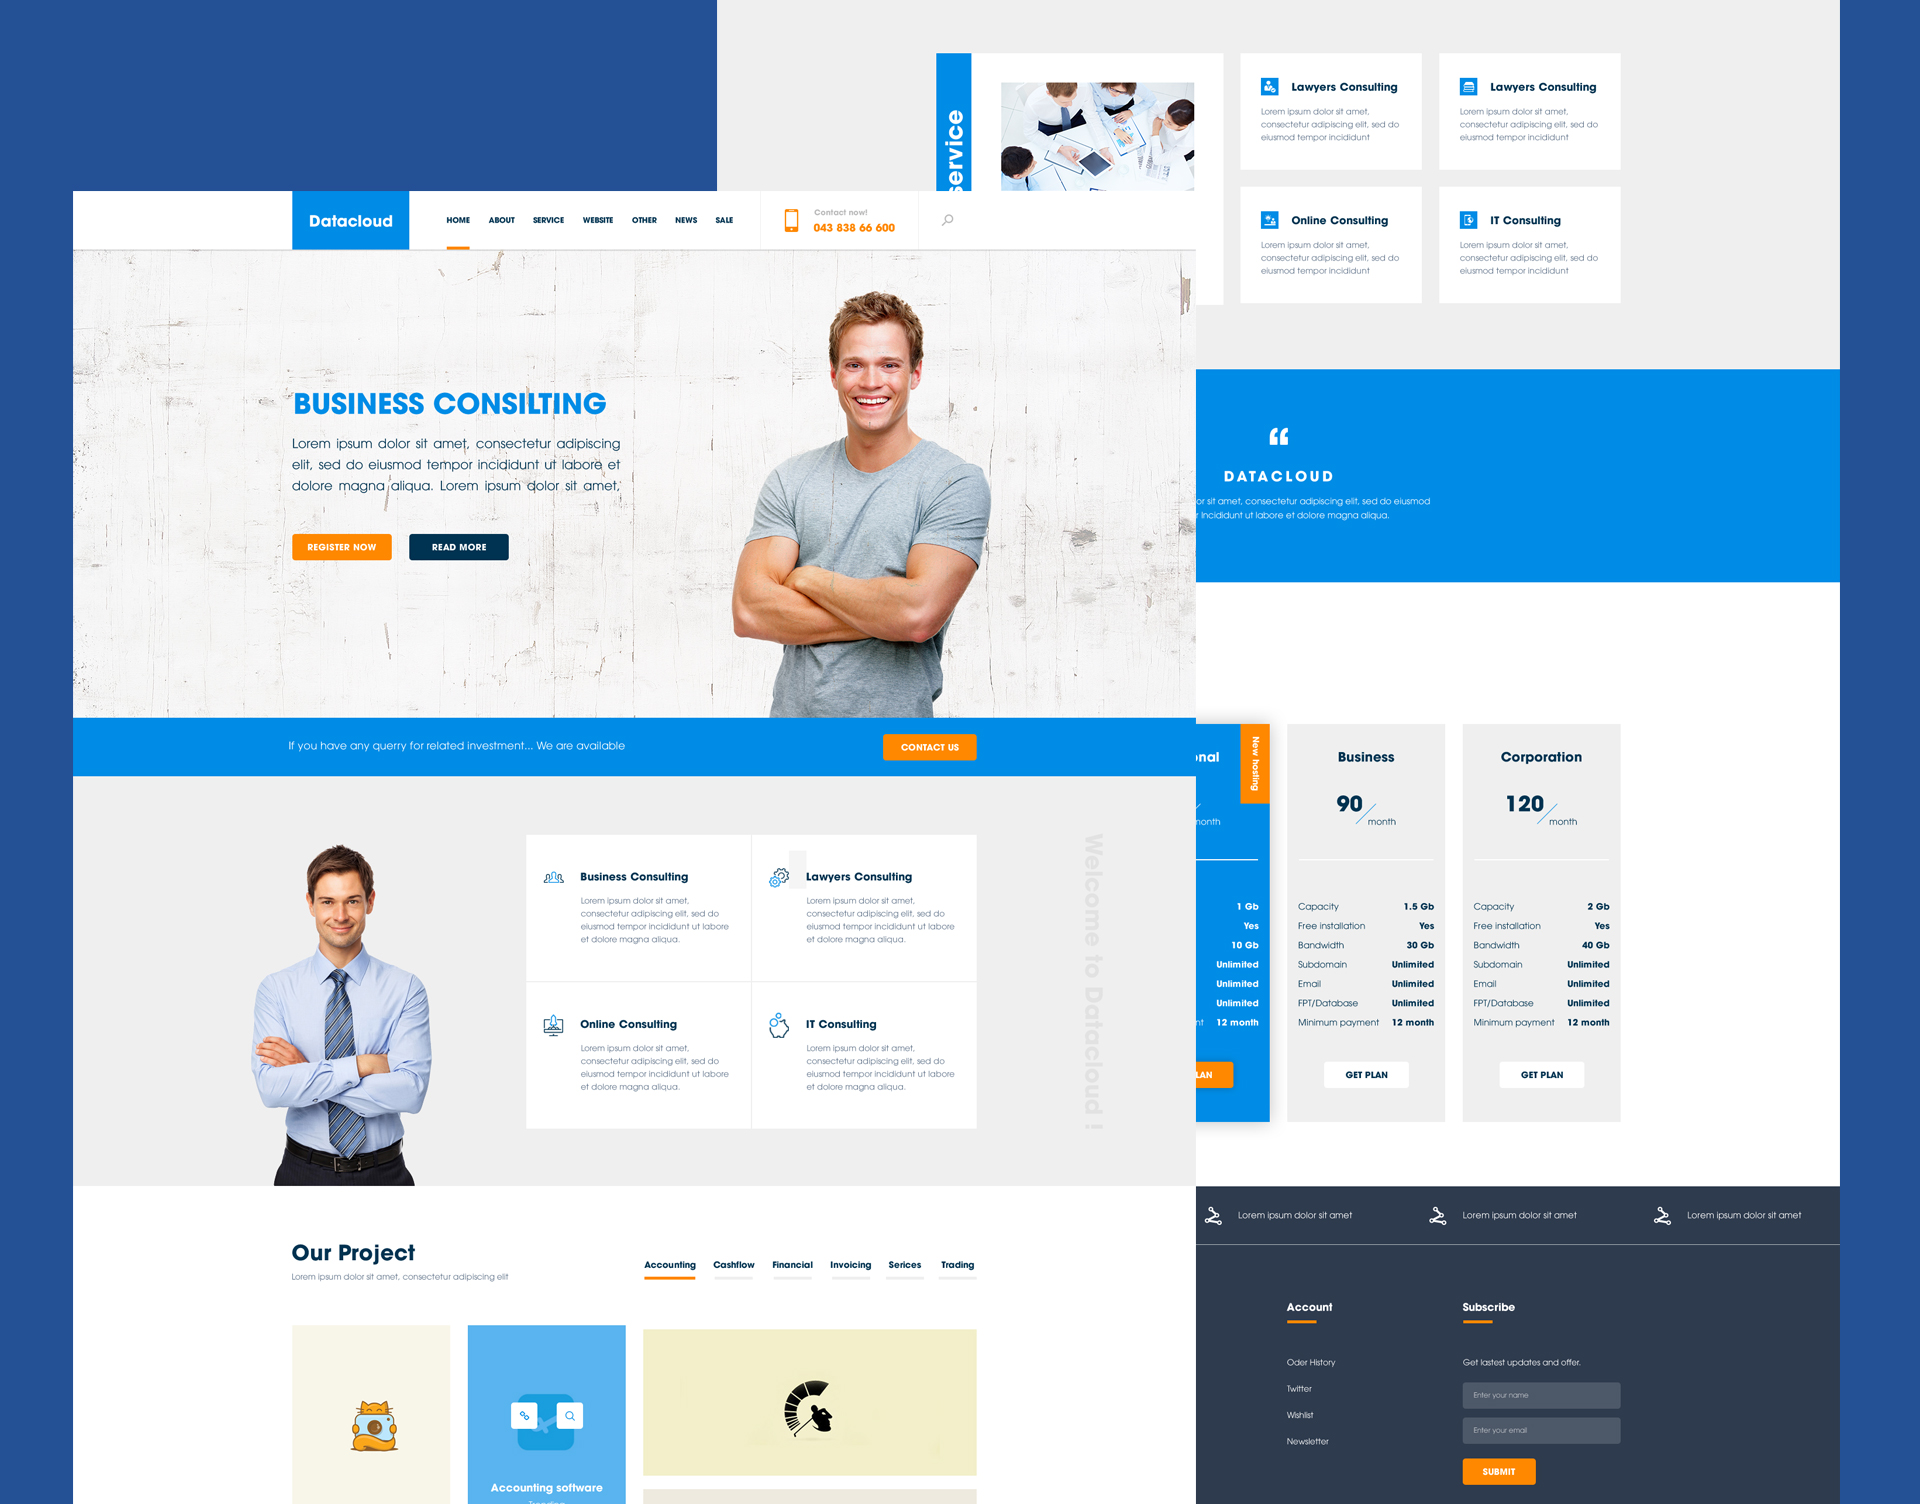 Business consulting website template free psd download for Consulting website